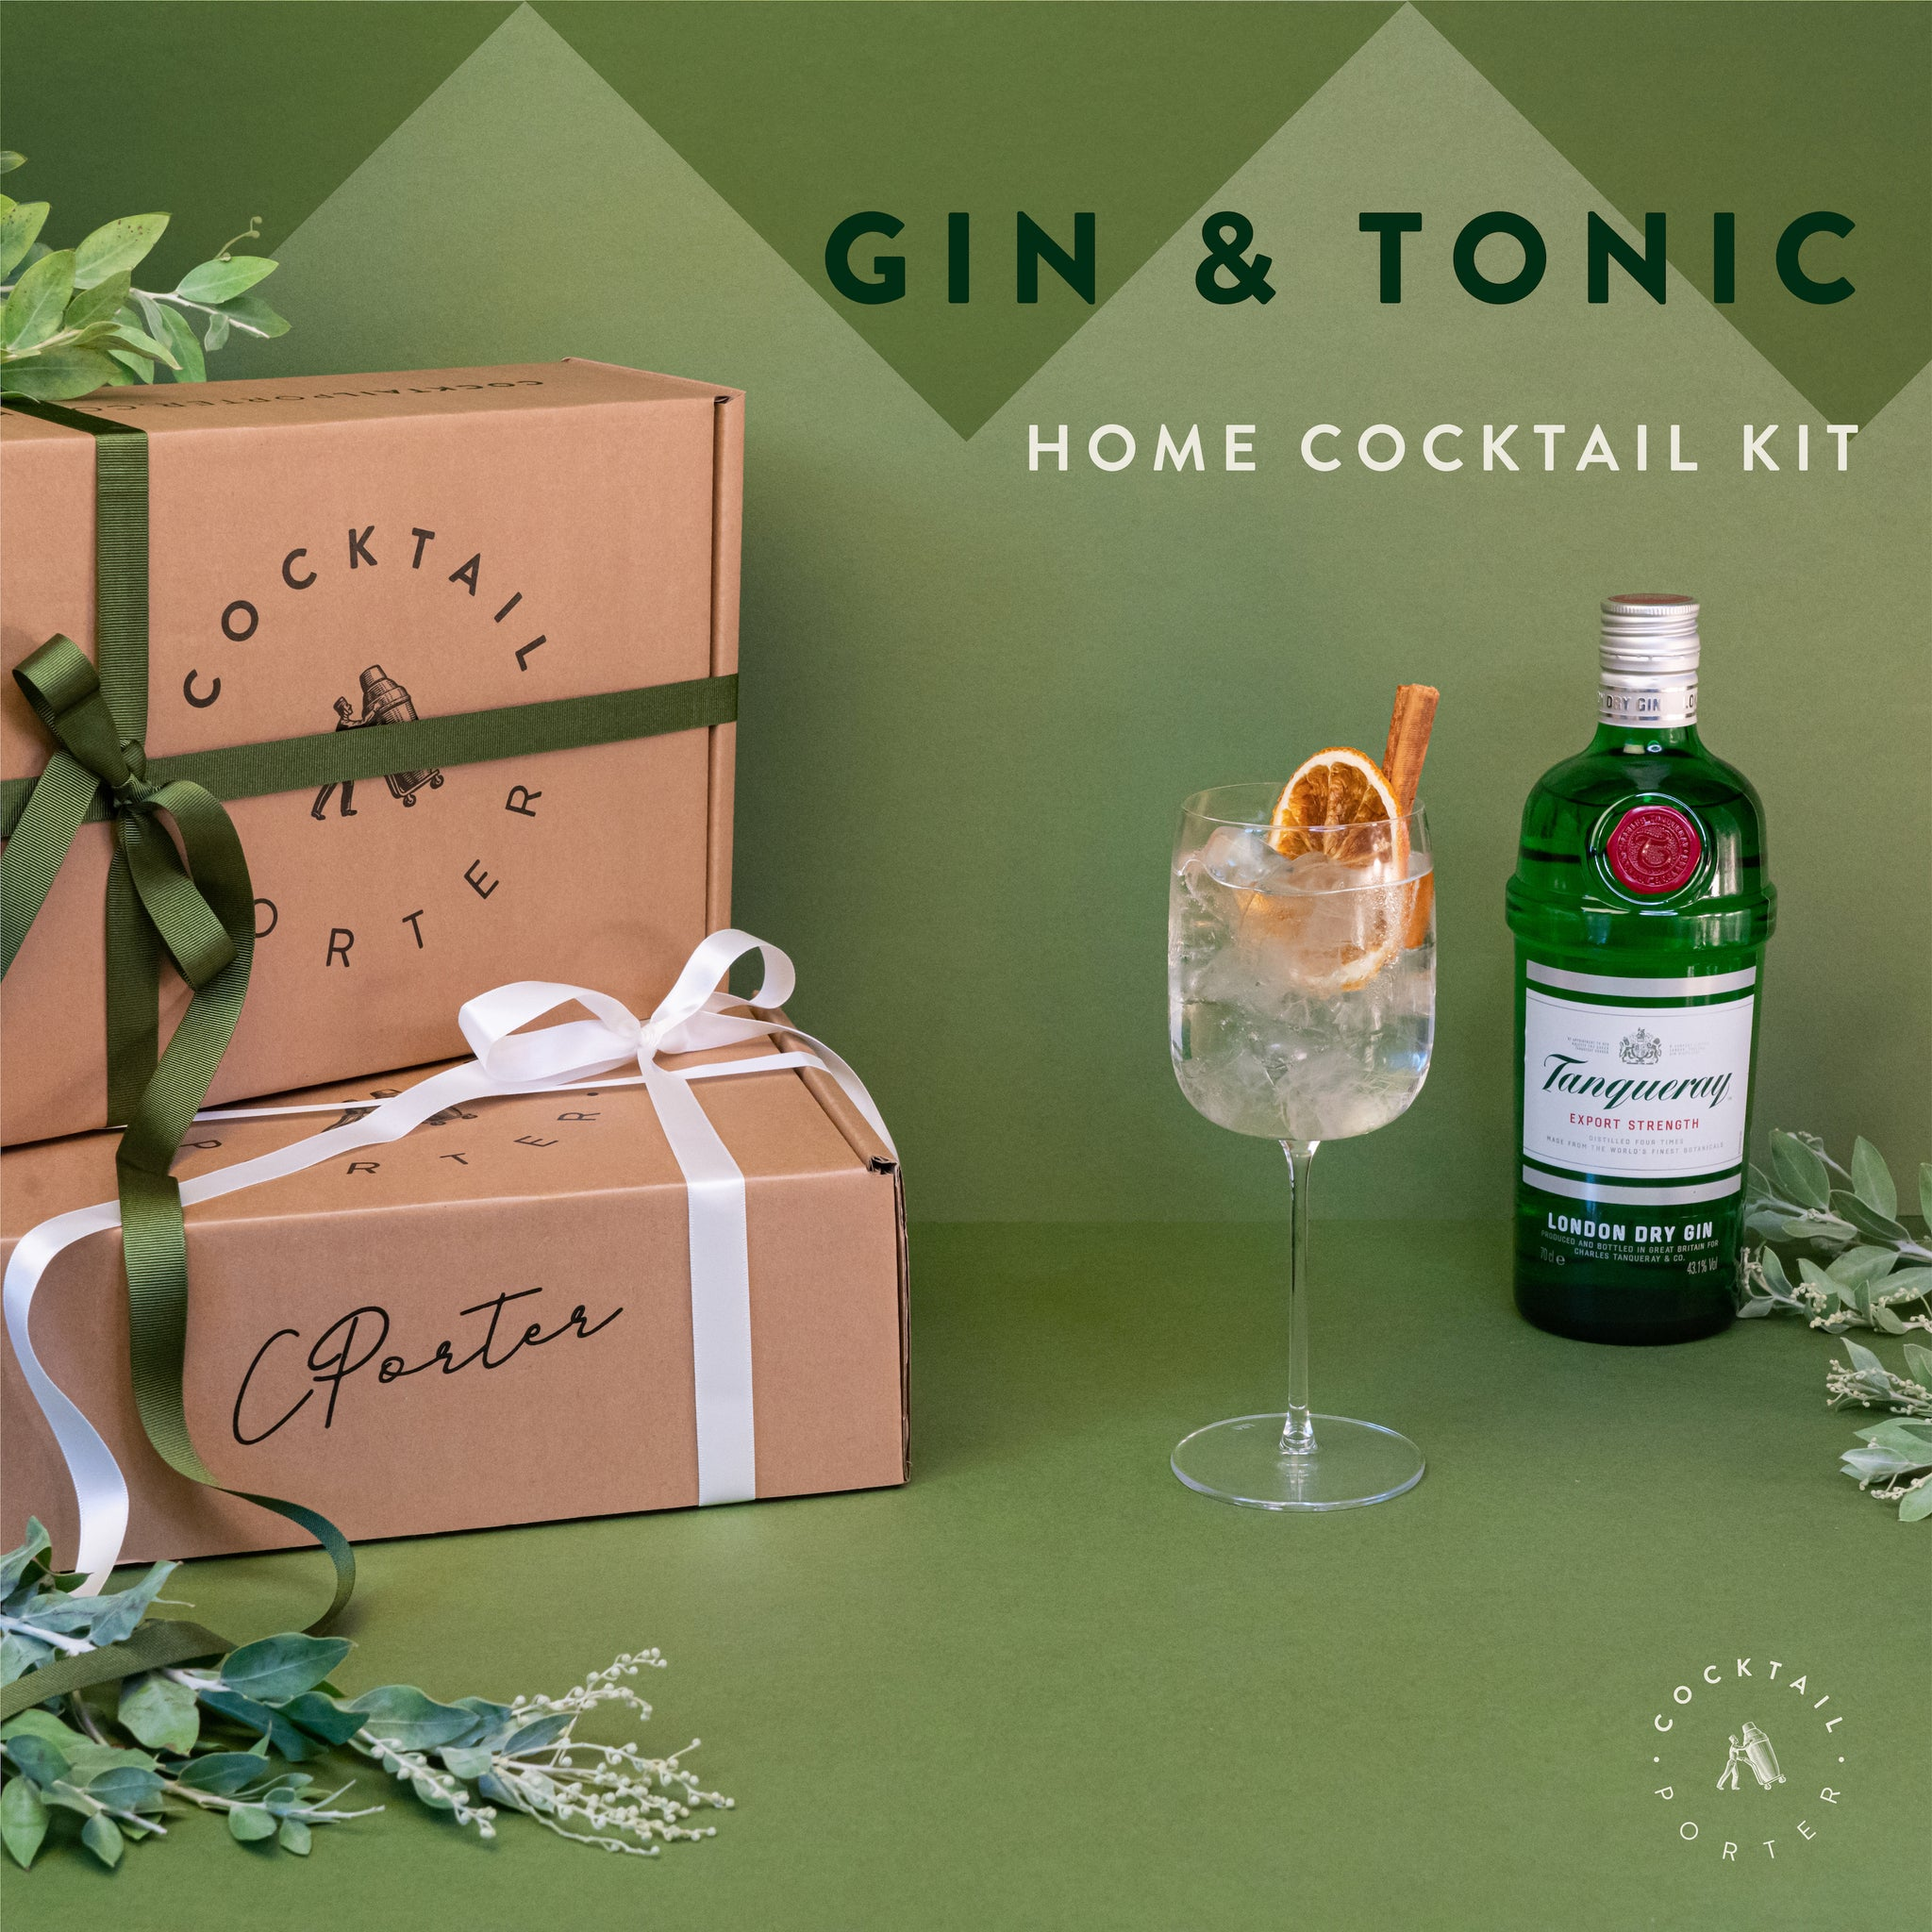 THE GINGLE BELLS & TONIC - Full size Kit